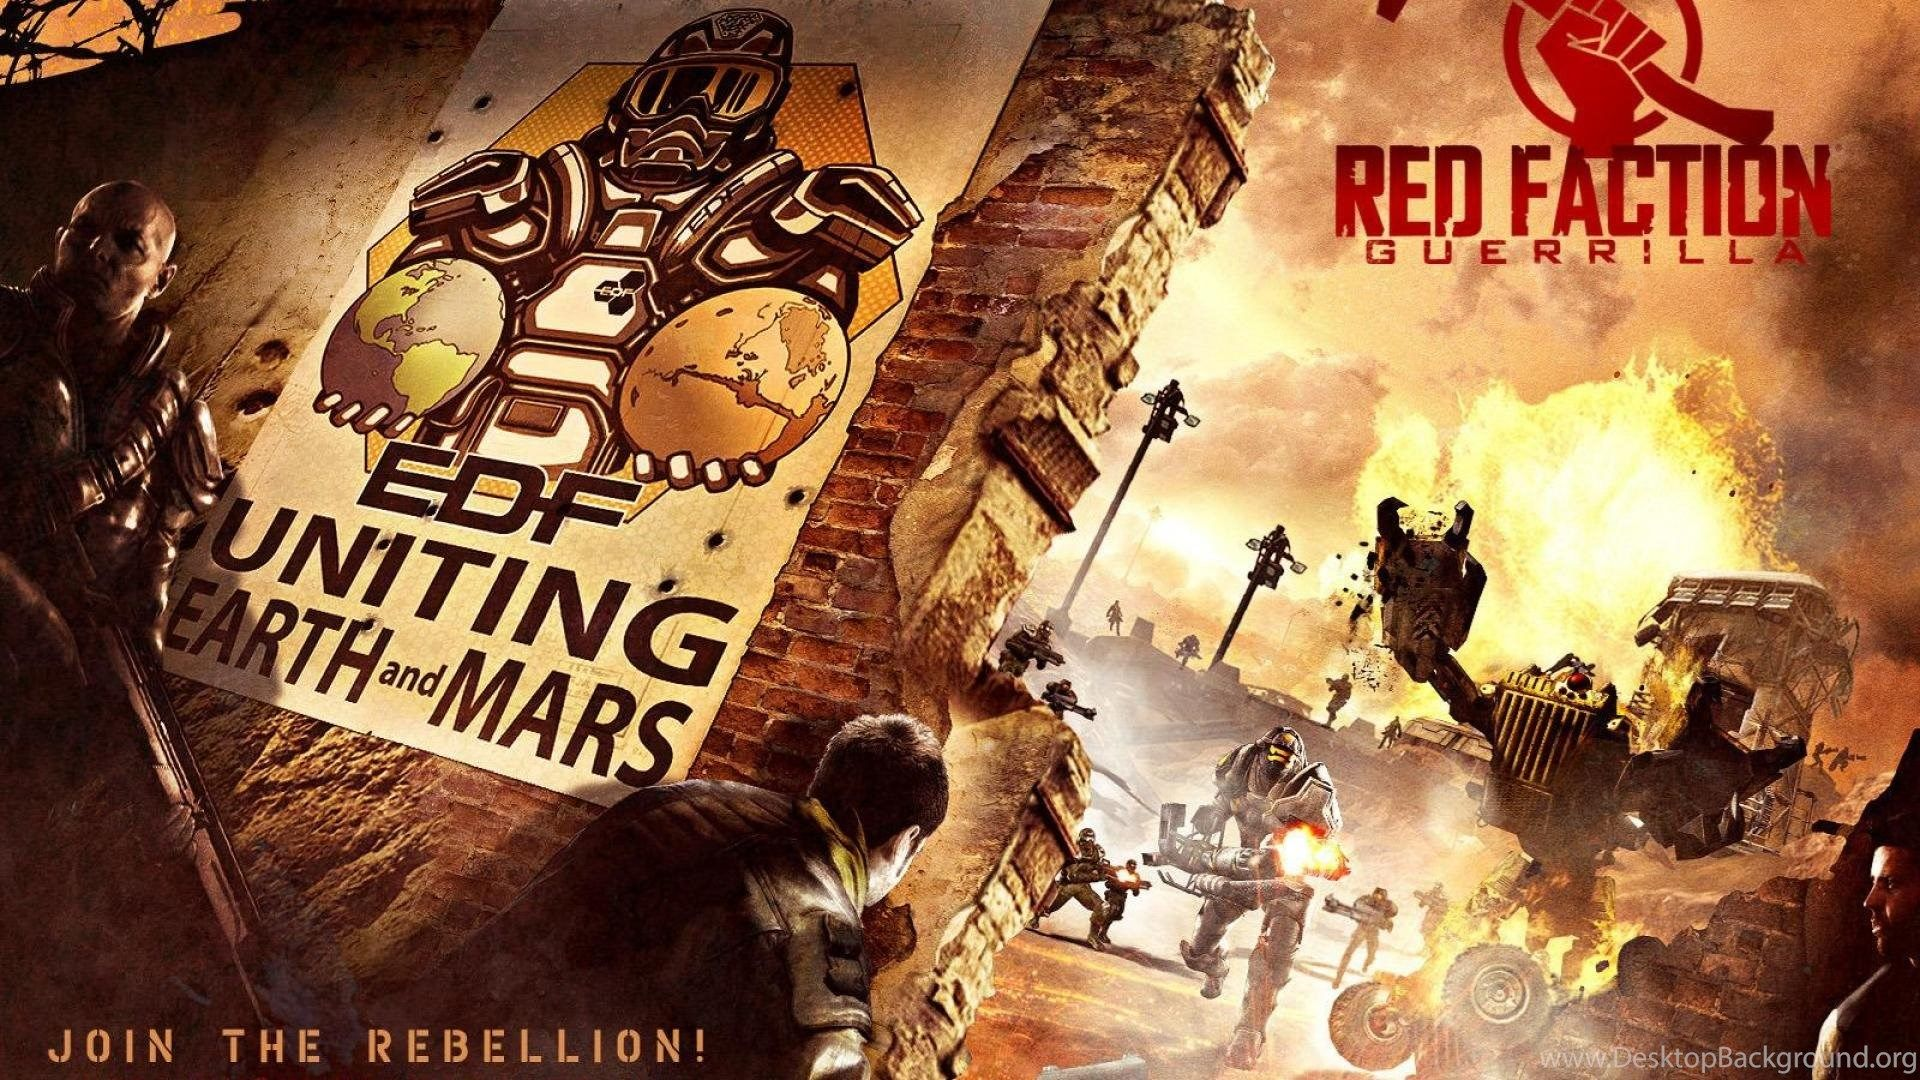 1. Red Faction Guerrilla